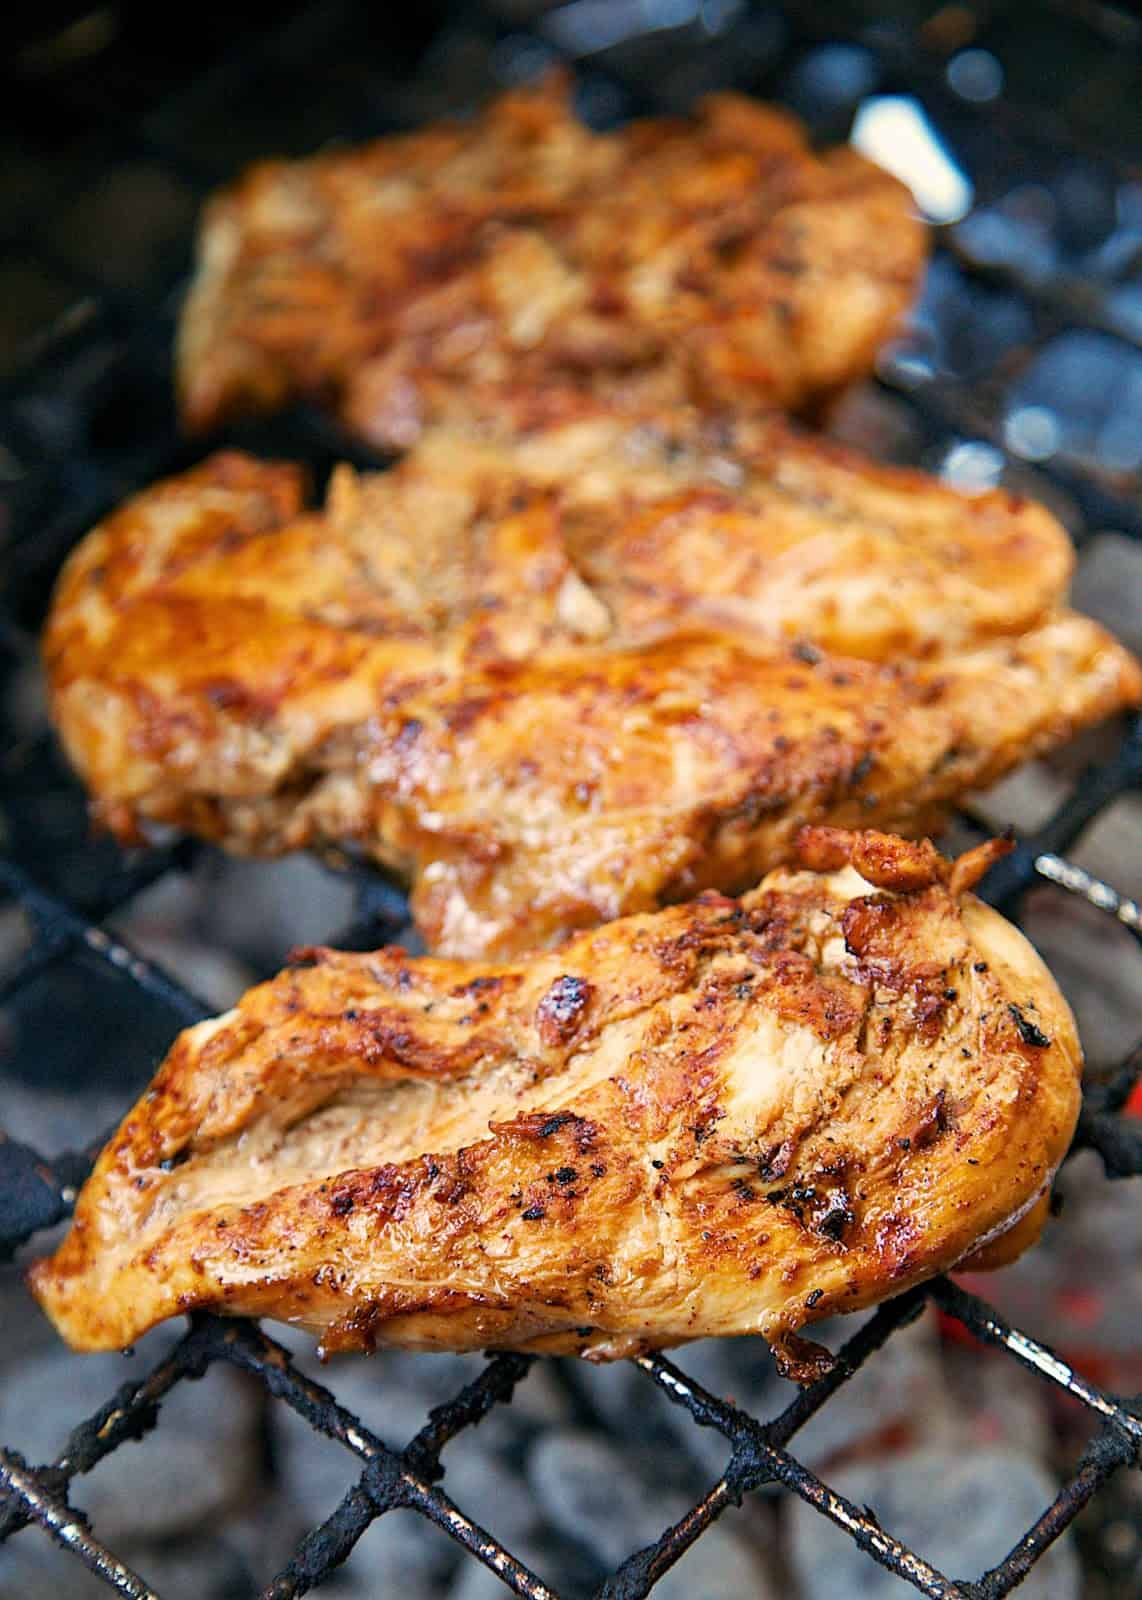 Bluegrass BBQ Chicken Recipe - chicken marinated in a tangy vinegar based bbq sauce - Seriously one of the best grilled chicken recipes we've ever made! Make extra chicken for leftovers - you're going to want it!